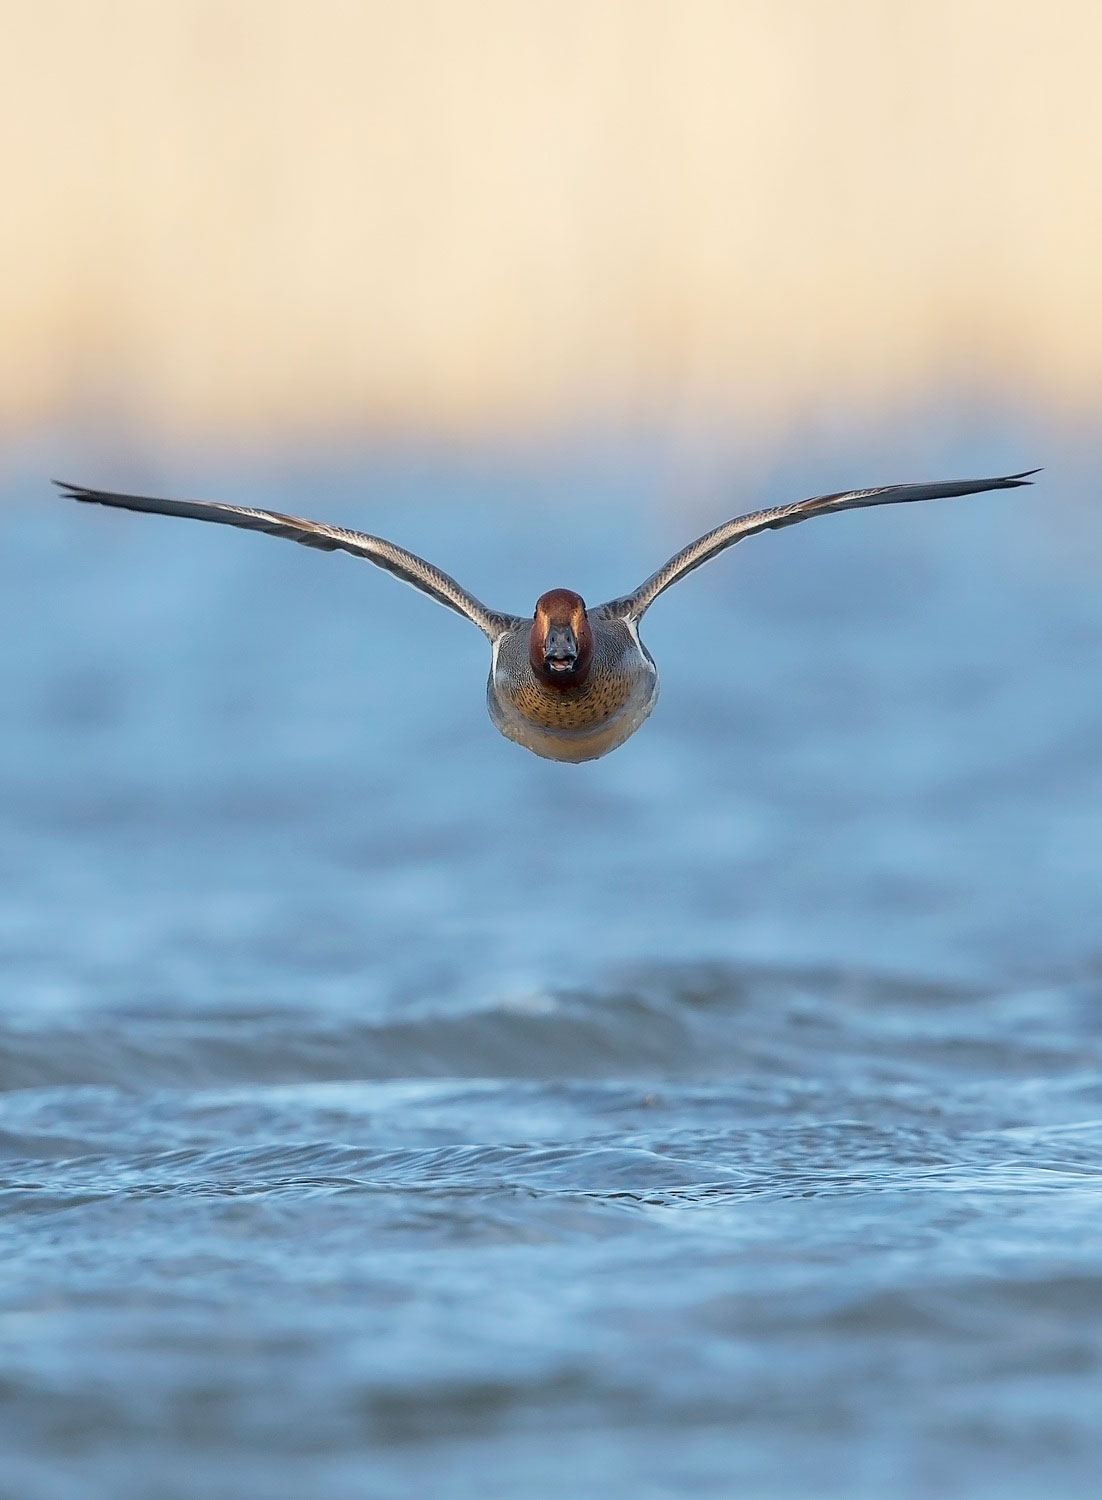 Ducks, like this Green-winged Teal, will almost always take off and land into the wind, allowing you to ideally position yourself for a head-on photograph. Brian Zwiebel